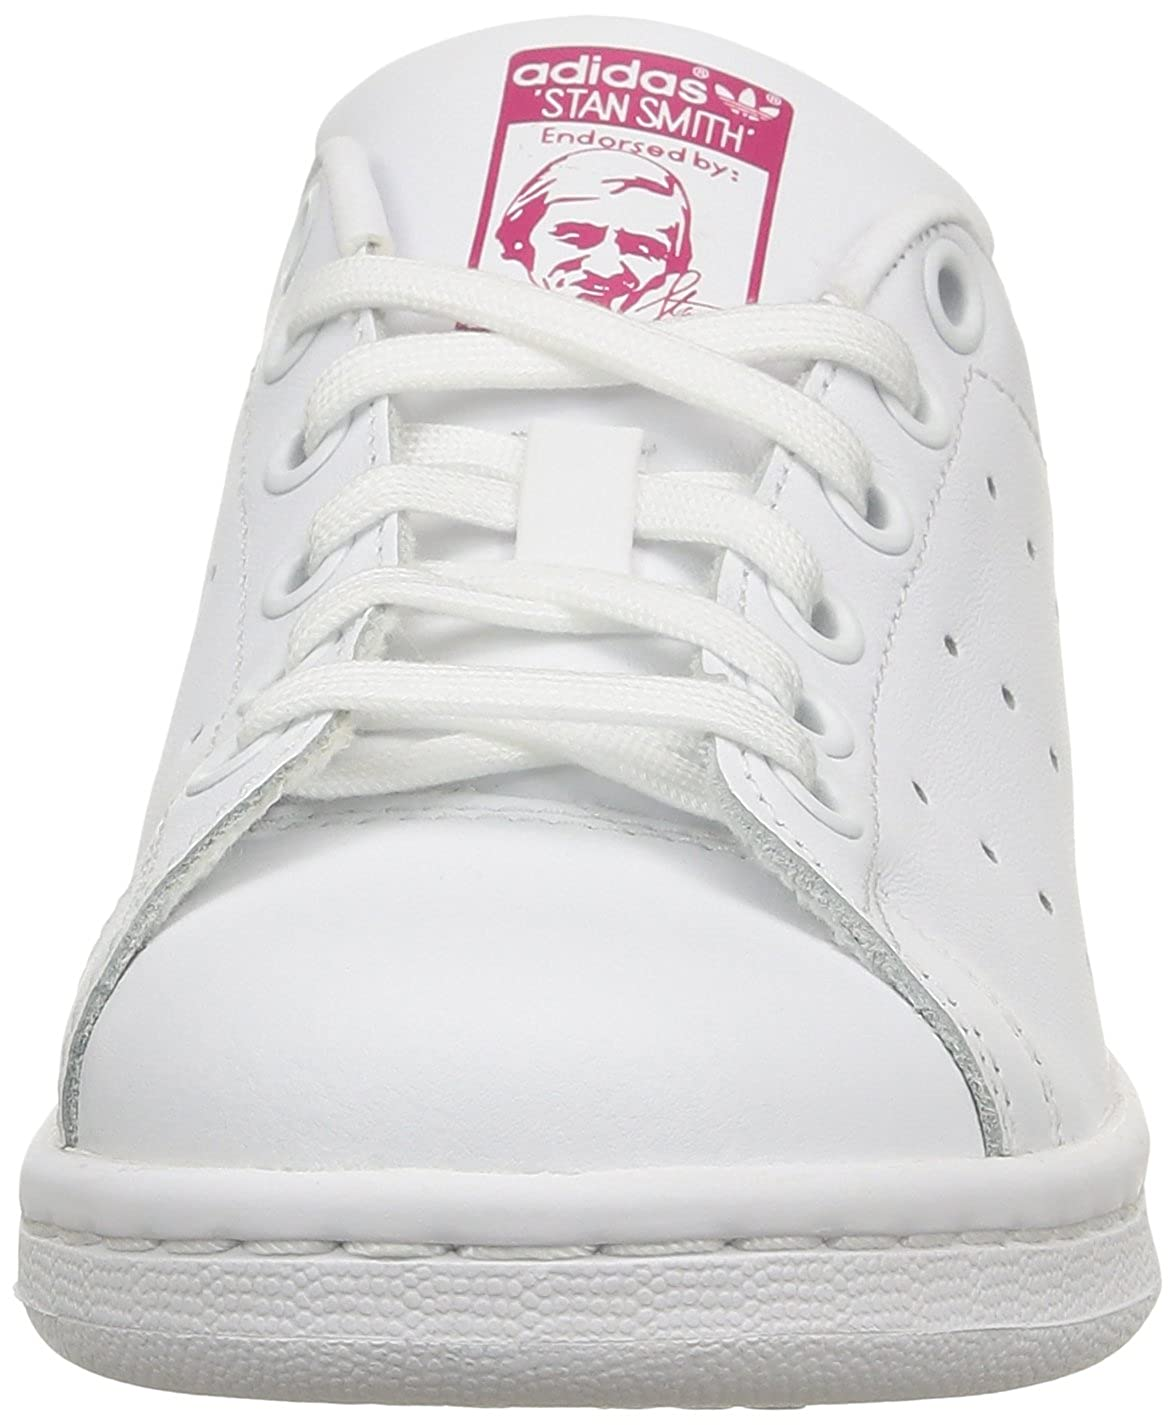 adidas Originals Stan Smith J White//Pink Leather 4 M US Big Kid